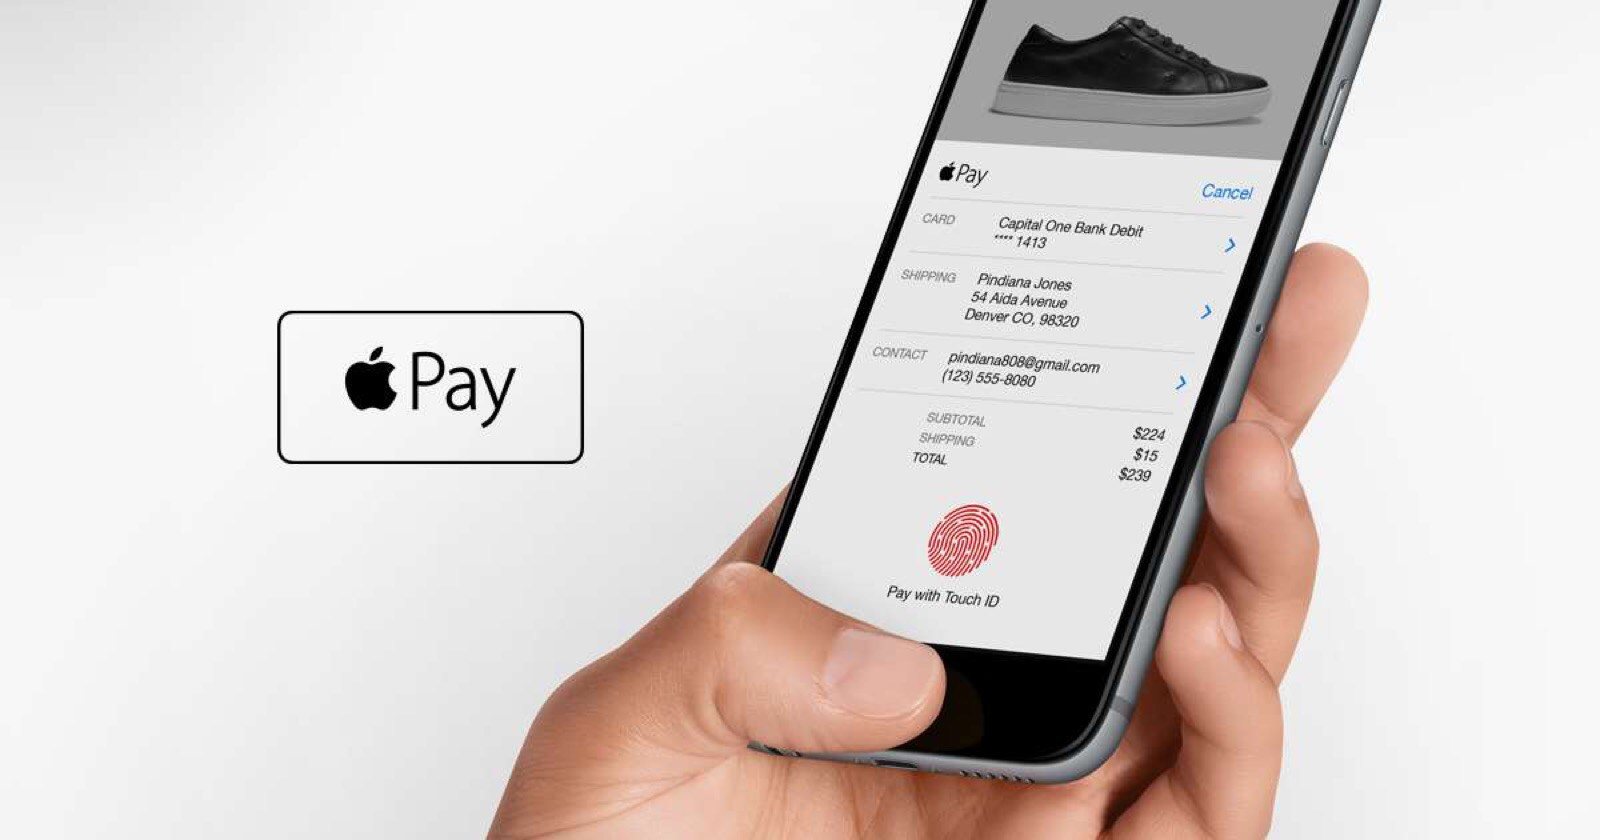 Western Union has Apple Pay cash transfers